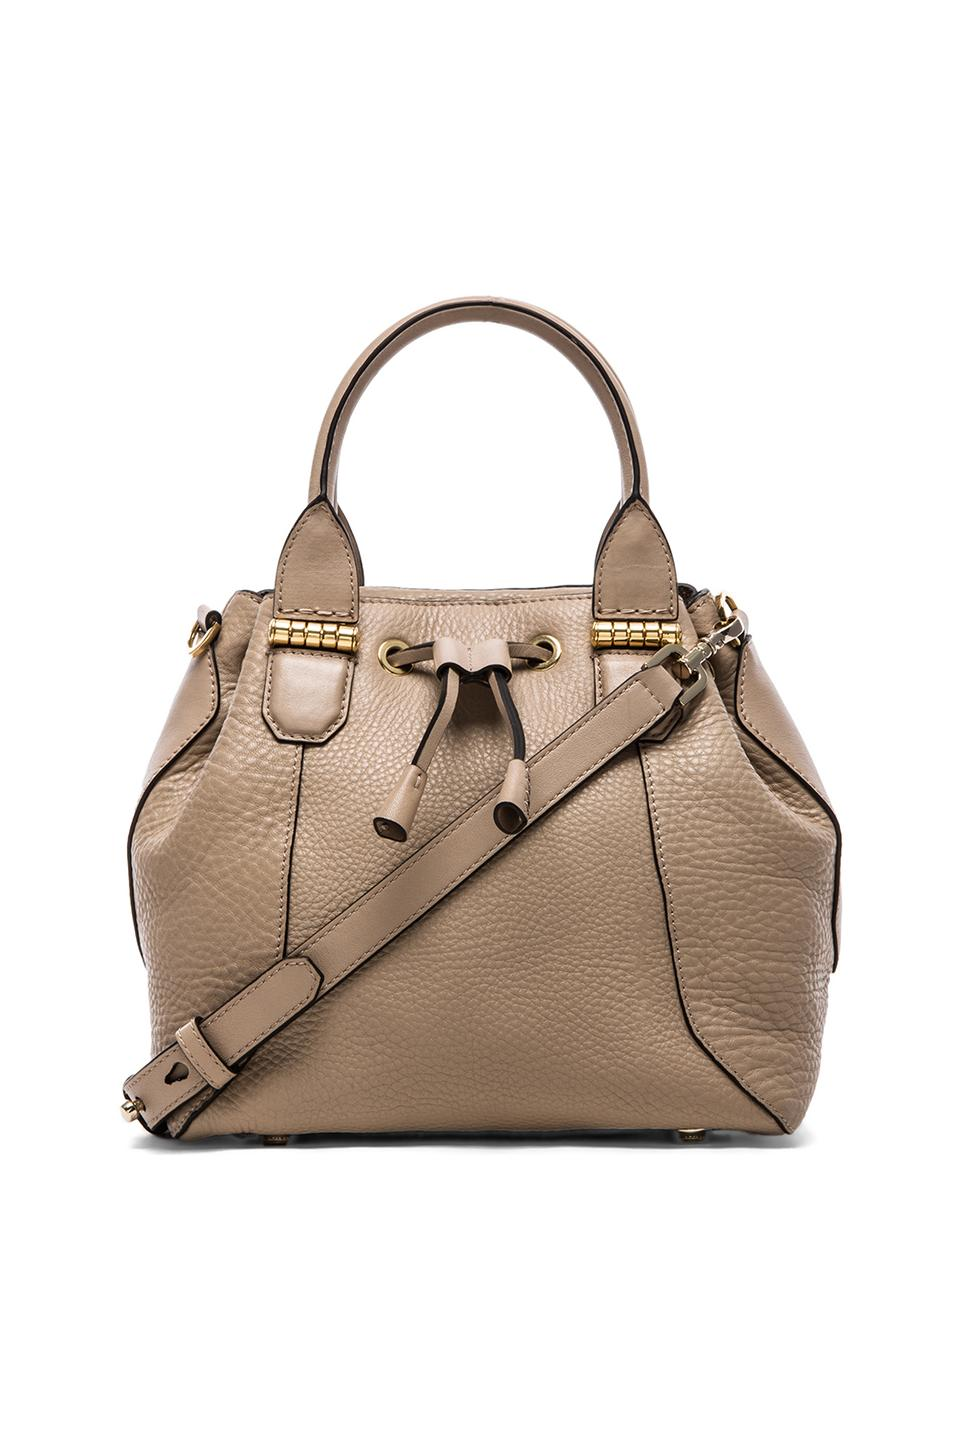 Mackage Loryn Mini Crossbody in Sand